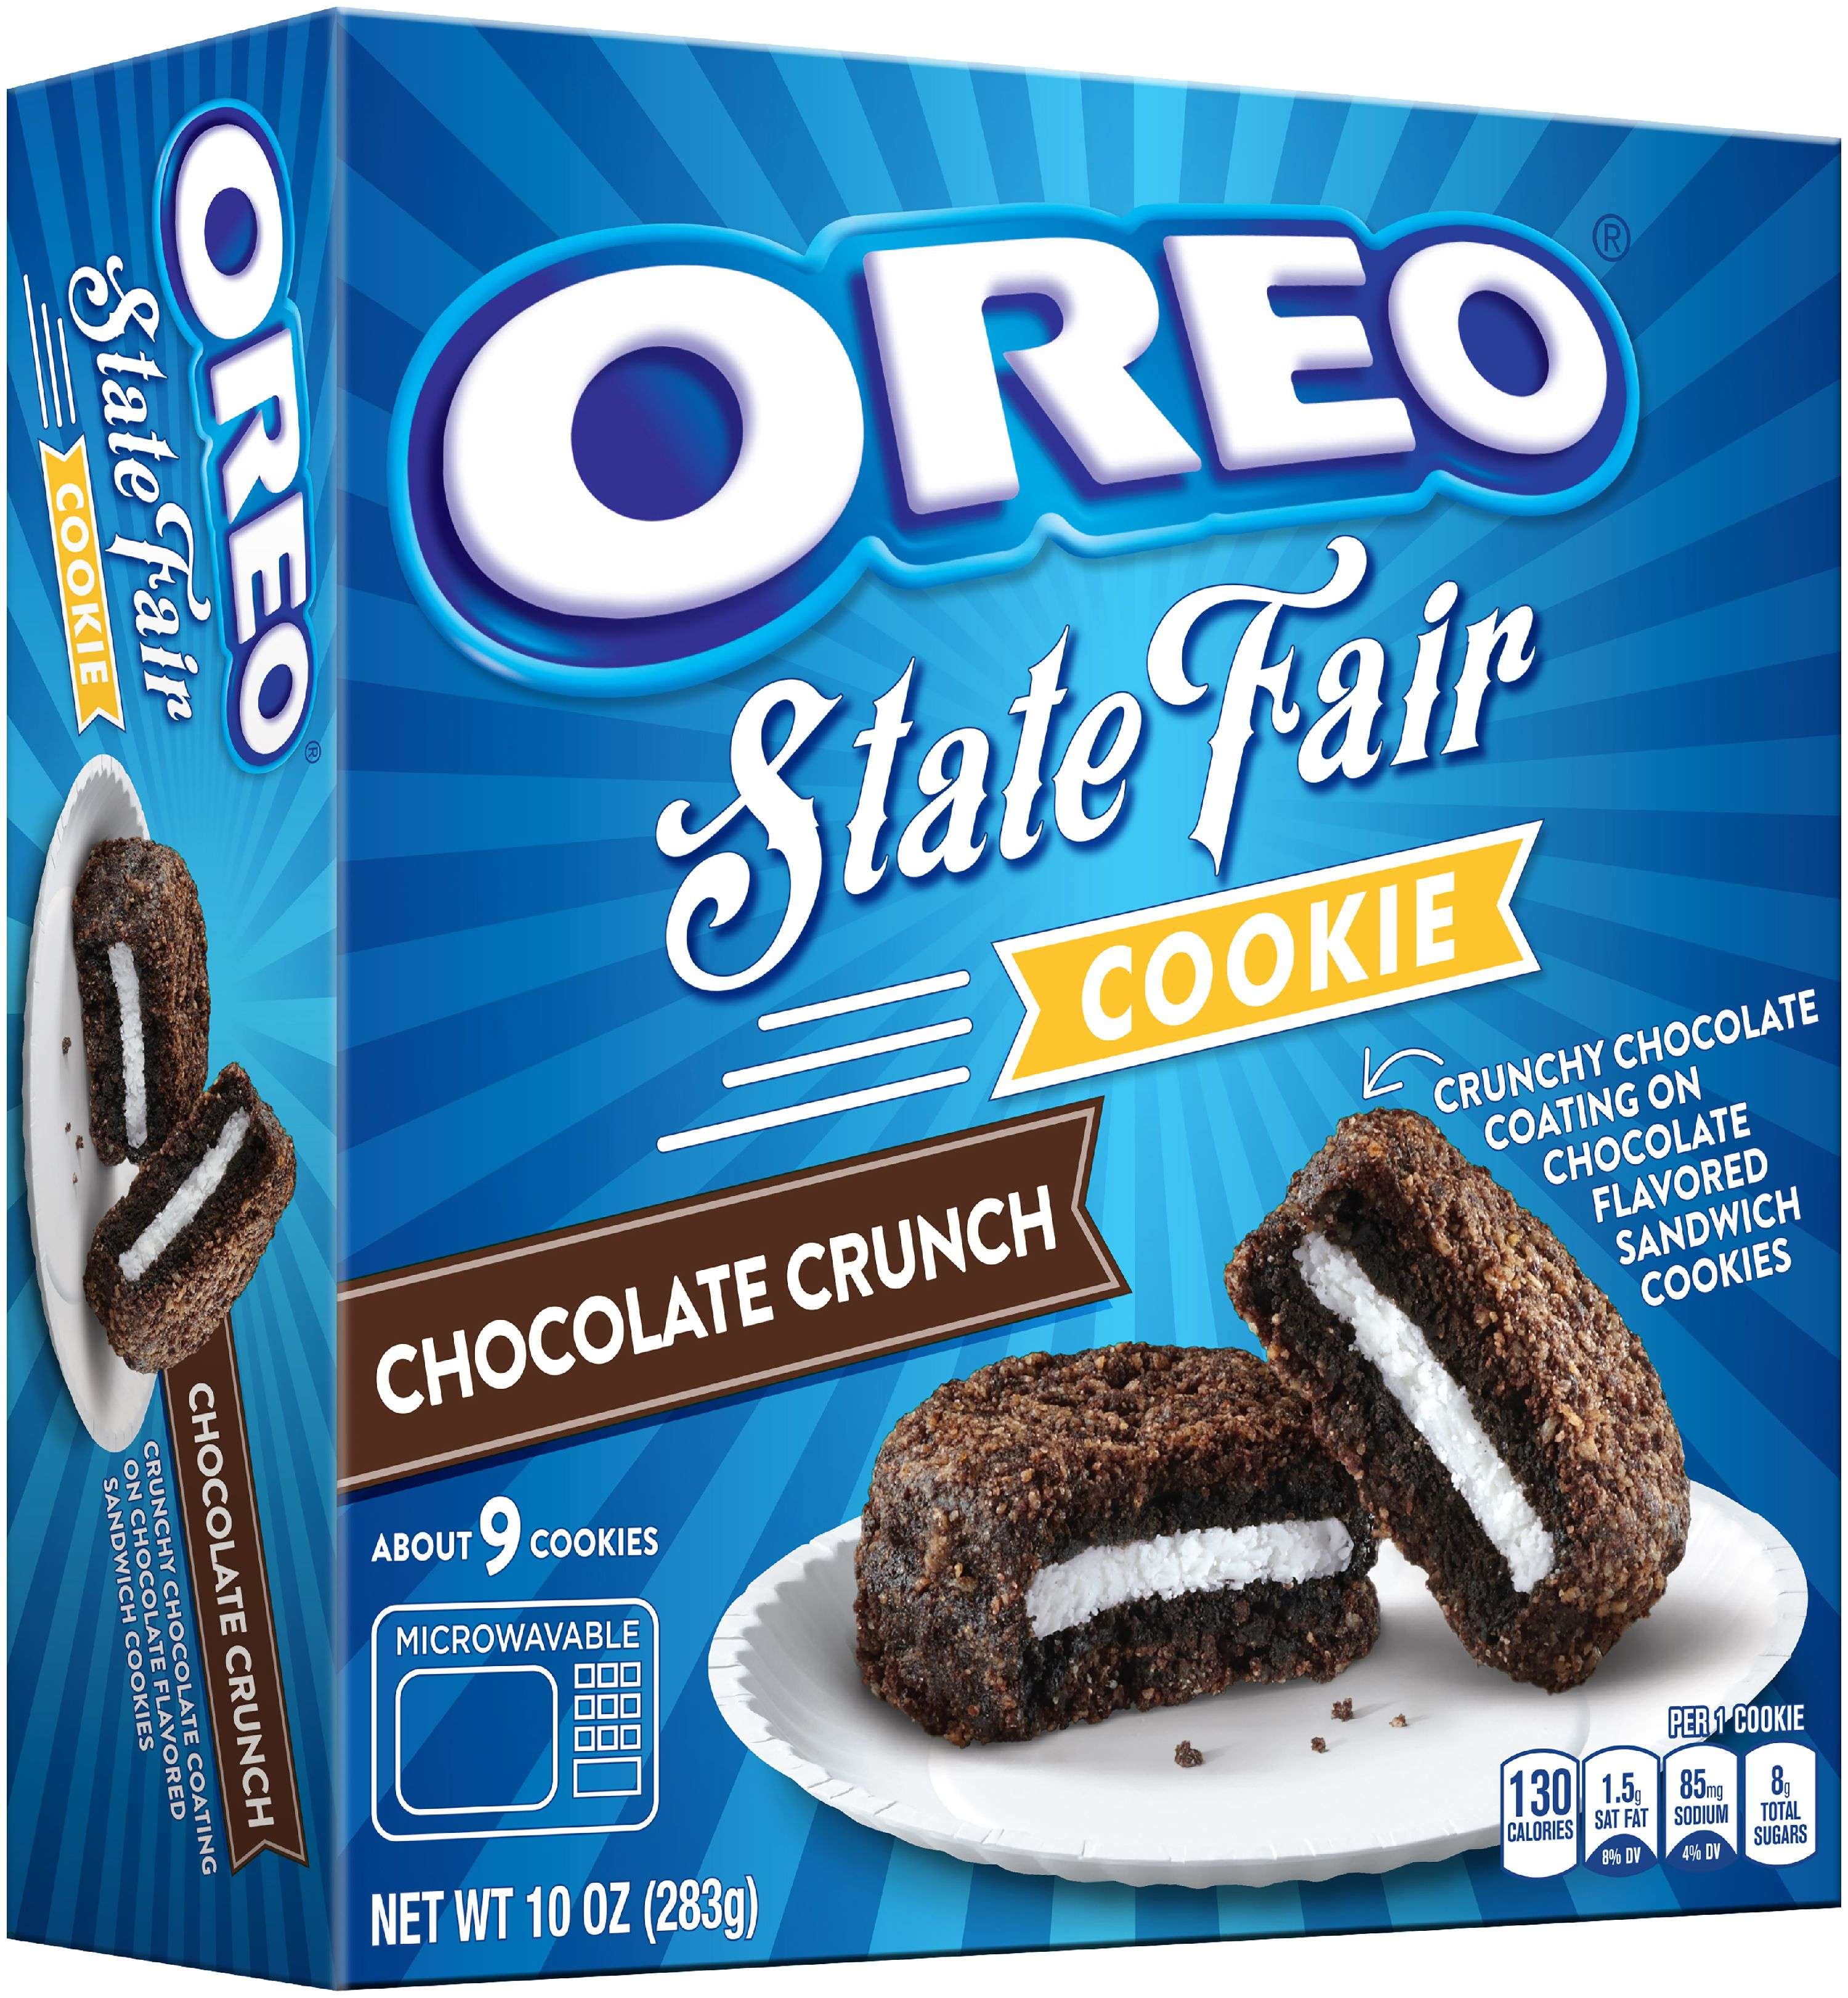 Oreo State Fair Chocolate Crunch Cookie